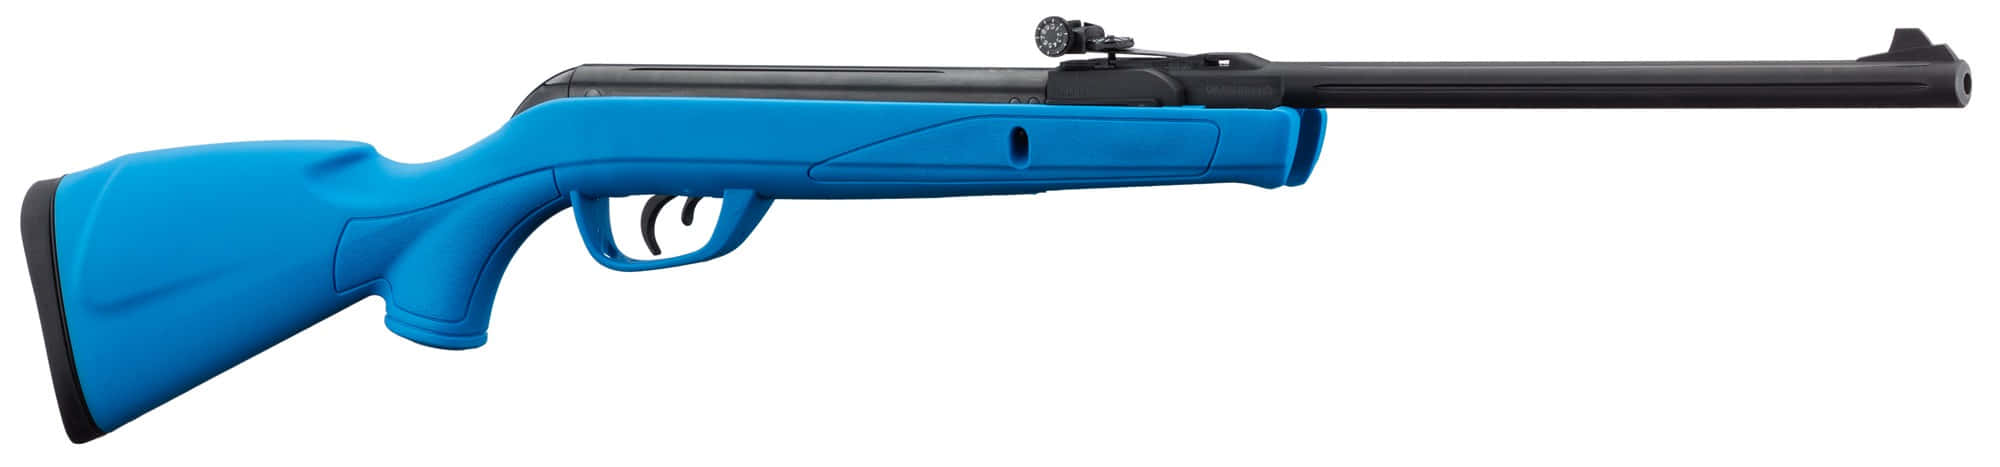 G1112 Carabine Gamo junior Delta blue Synth 7.5 joules - G1112